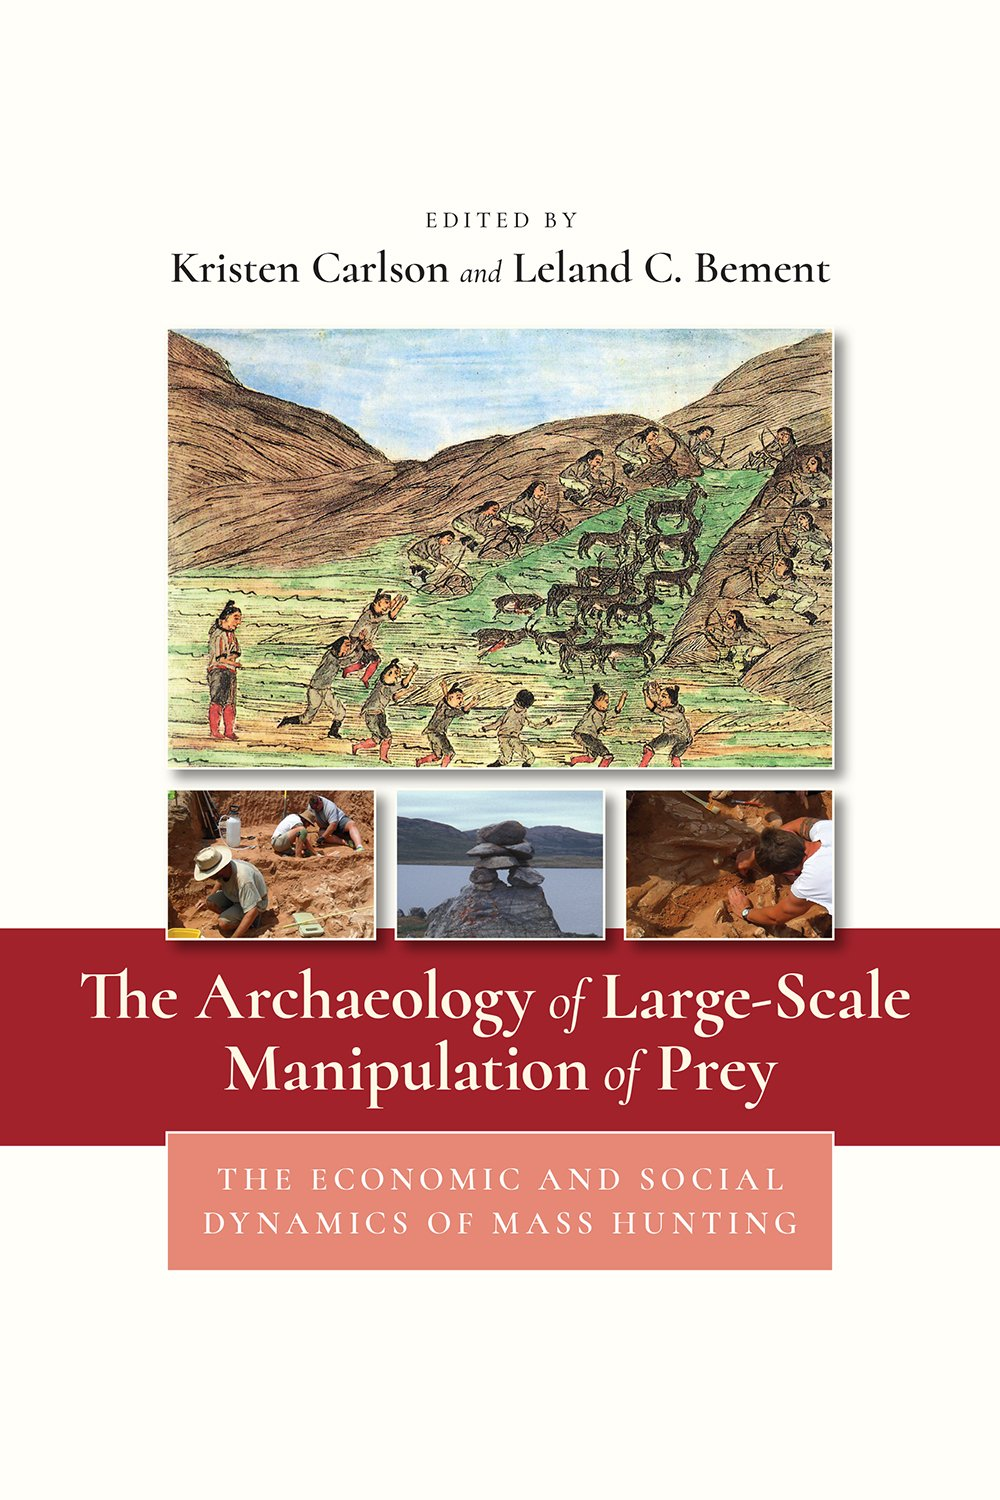 Download The Archaeology of Large-Scale Manipulation of Prey: The Economic and Social Dynamics of Mass Hunting Text fb2 ebook